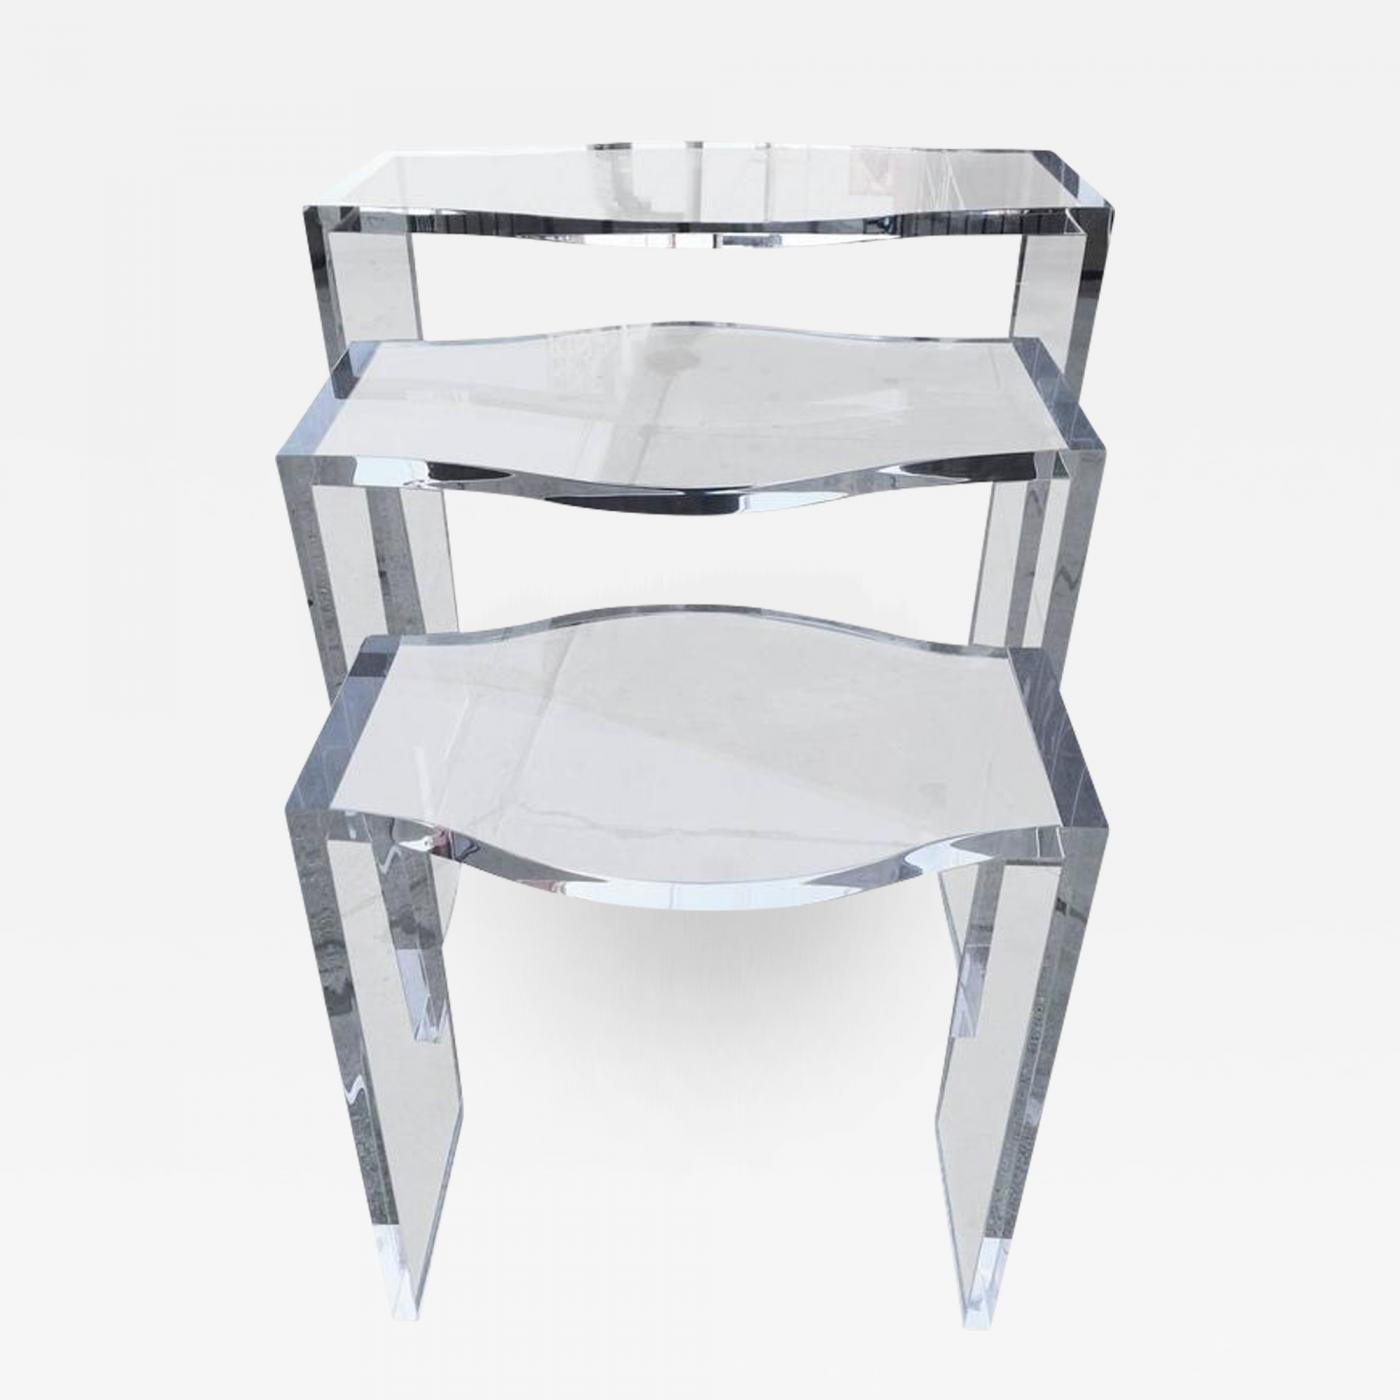 Charles hollis jones lucite nesting tables by charles hollis jones listings furniture tables side tables charles hollis jones lucite nesting watchthetrailerfo